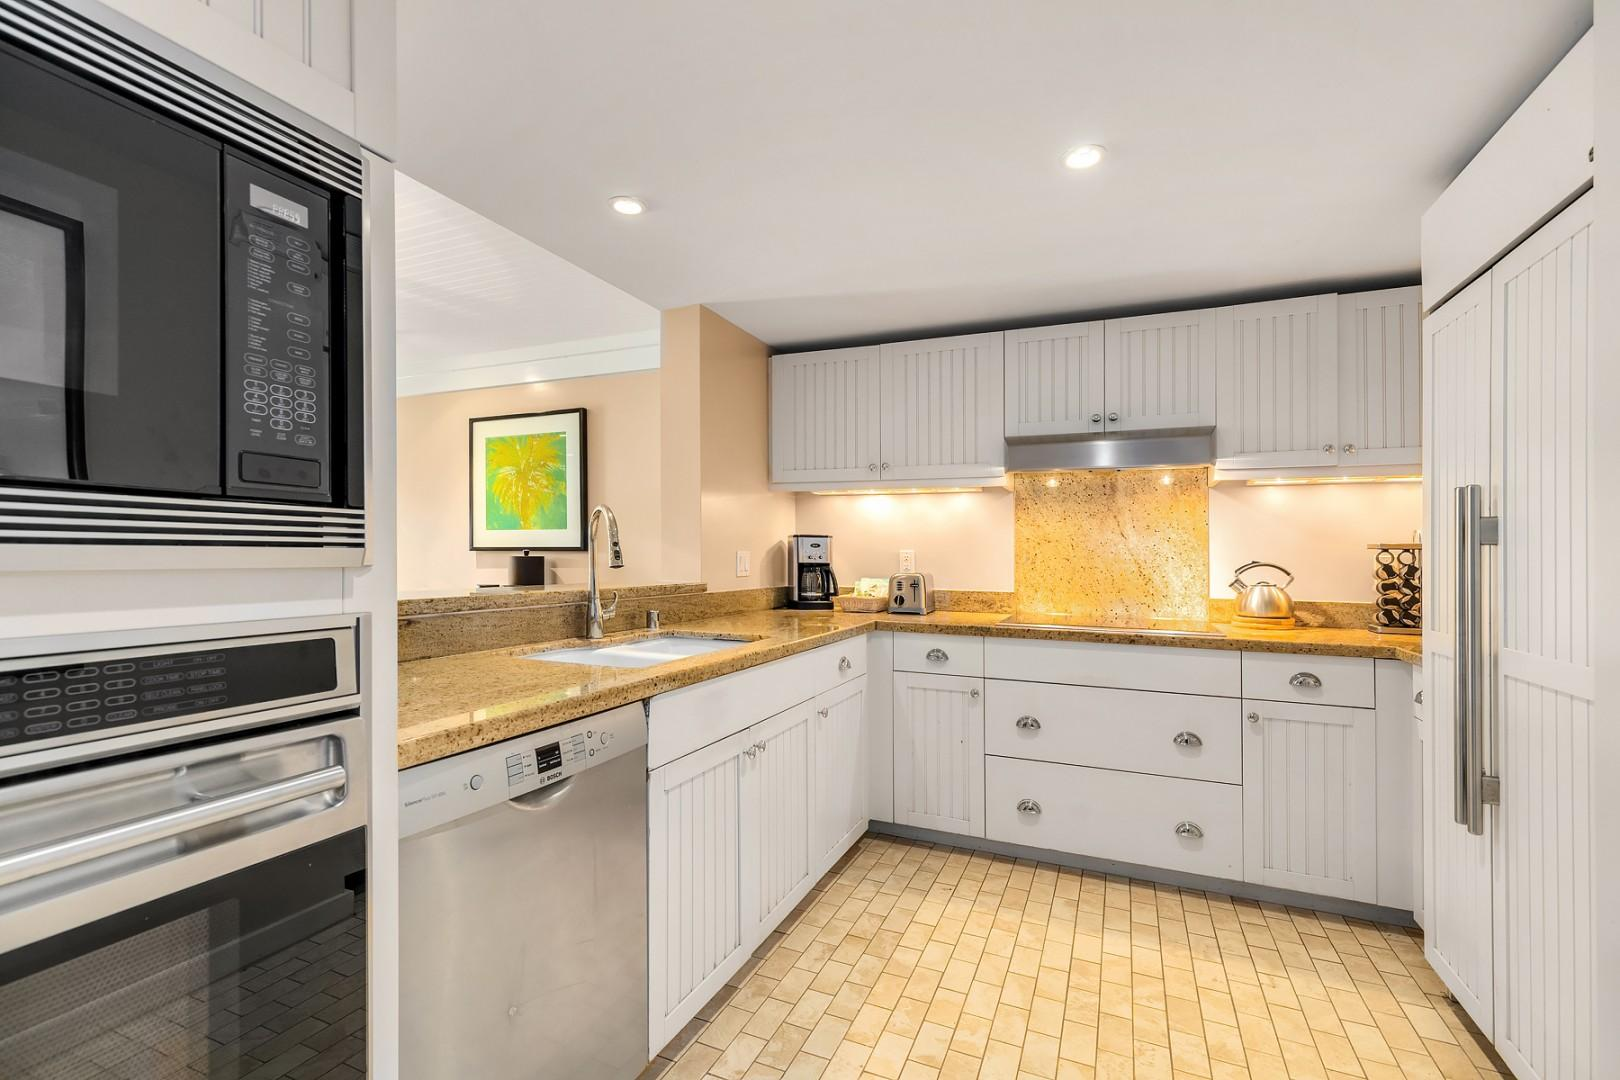 Chef's kitchen with high end appliances and built in refrigerator.